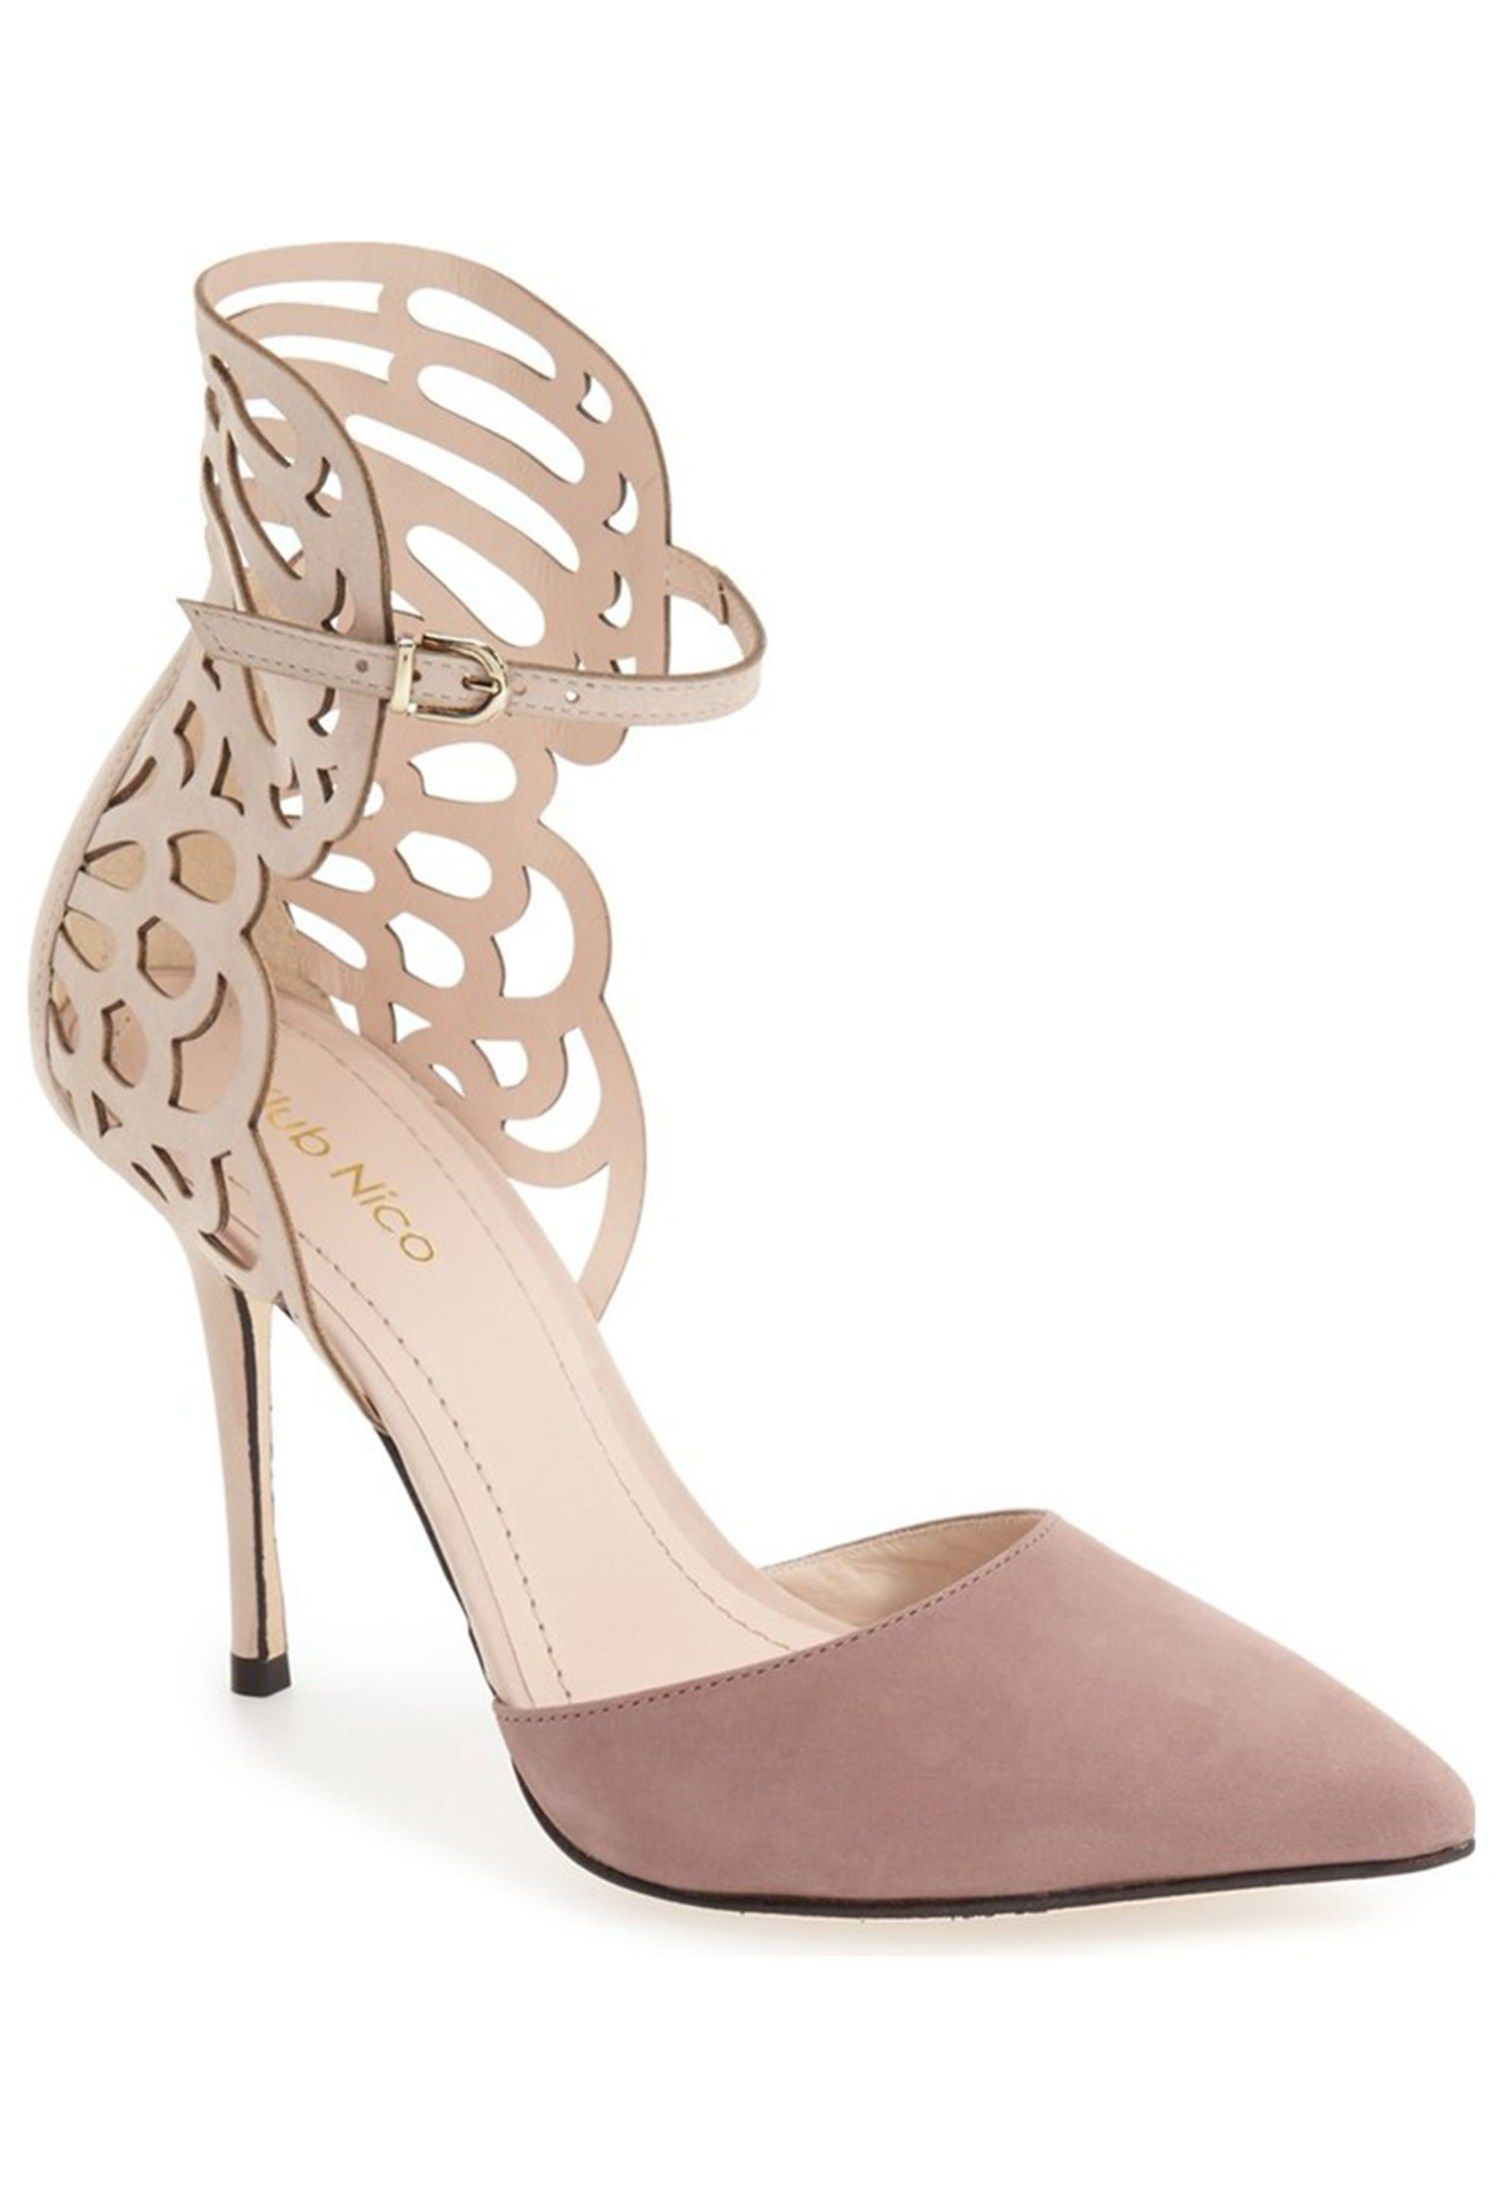 Self-Conscious Bnib Aquazzura Sandal Heel 7.5 Cm Size 8 B Women's Shoes Clothing, Shoes, Accessories